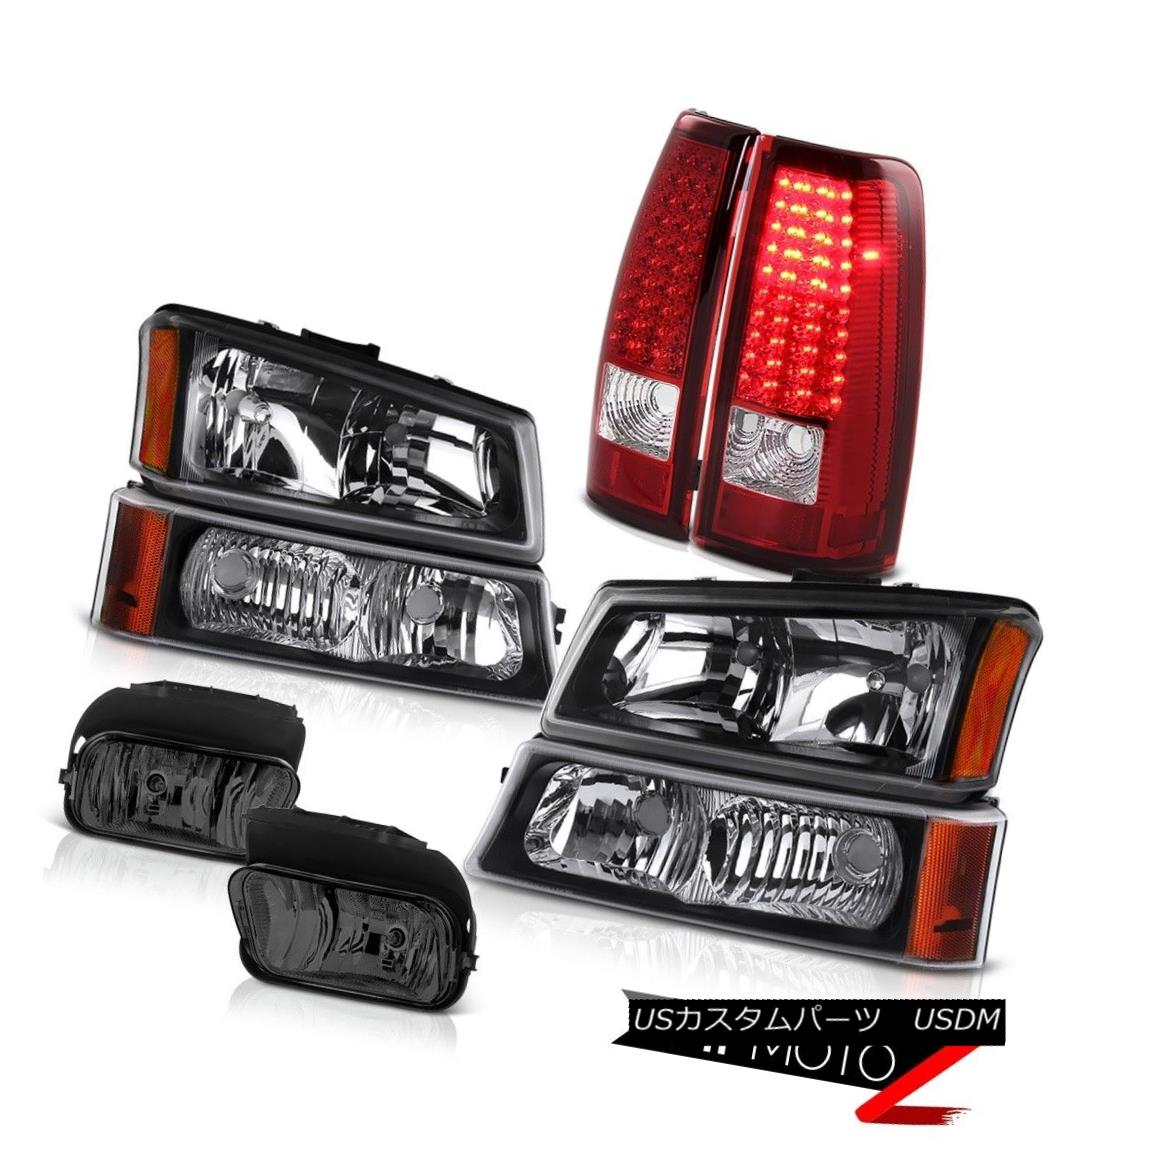 ヘッドライト 03-06 Silverado 5.3L V8 Black Head Lights Lamps Bumper LED Tail Driving Foglight 03-06 Silverado 5.3L V8ブラックヘッドライトランプバンパーLEDテール駆動Foglight